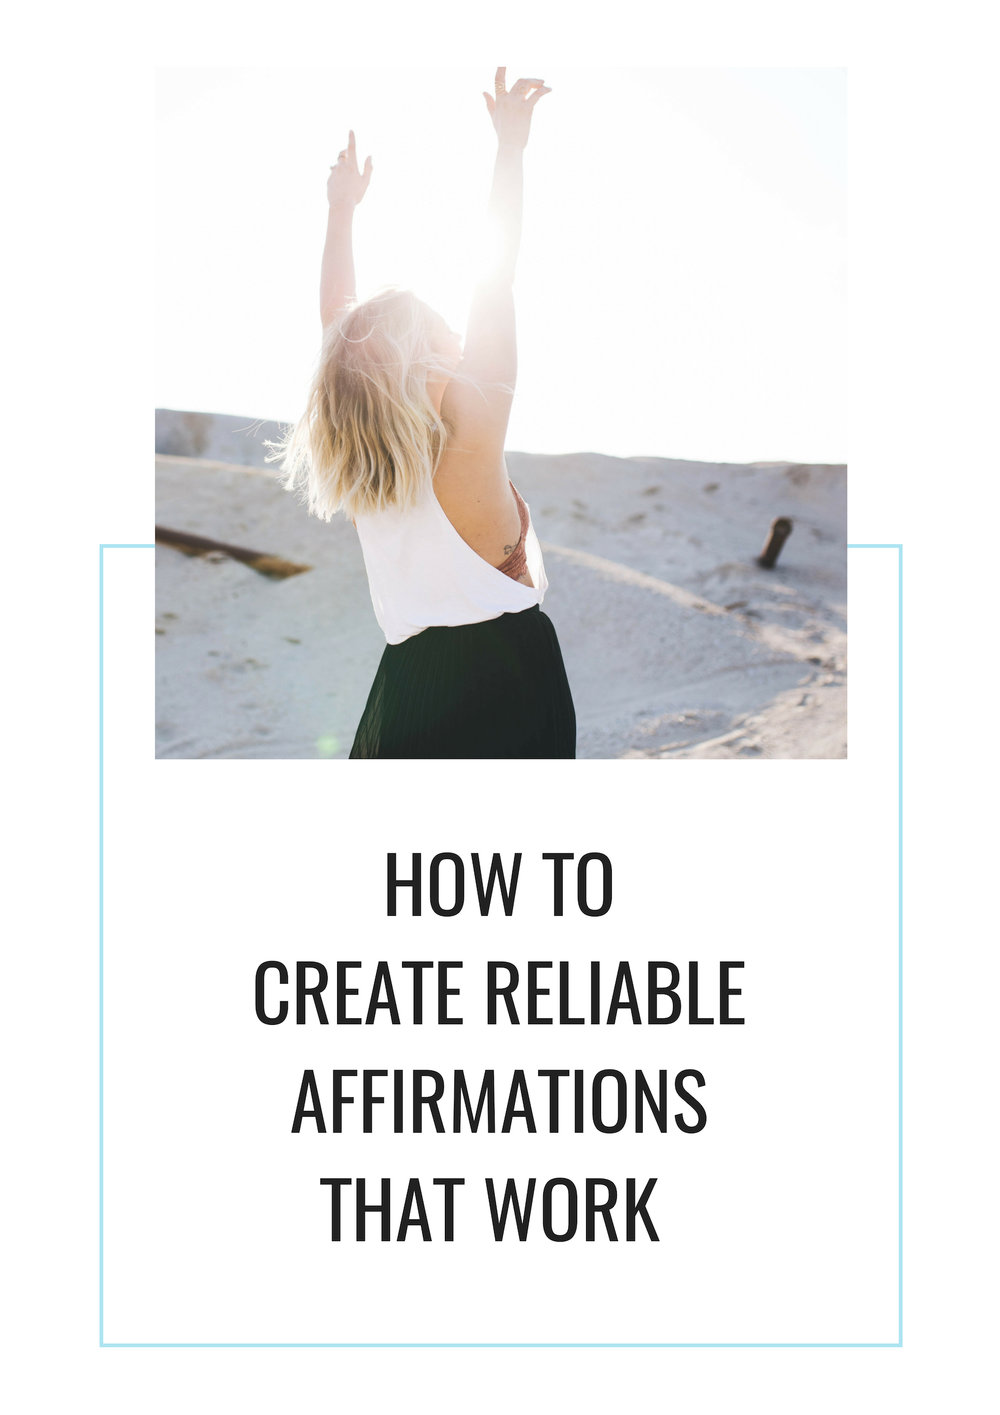 how-to-create-affirmations-that-work.jpg